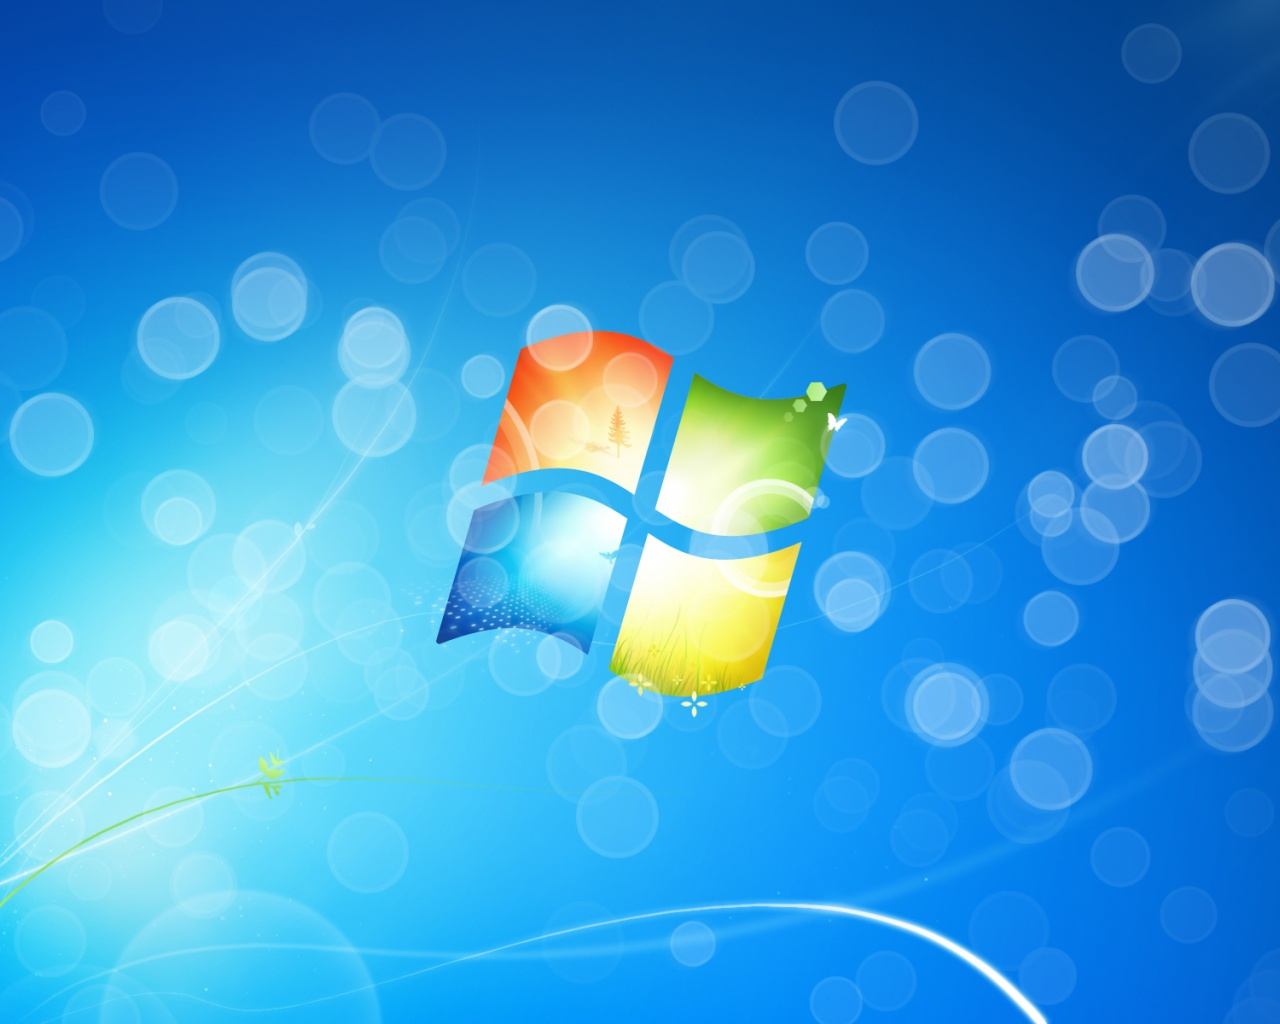 apple desktop wallpaper windows 7 - photo #20